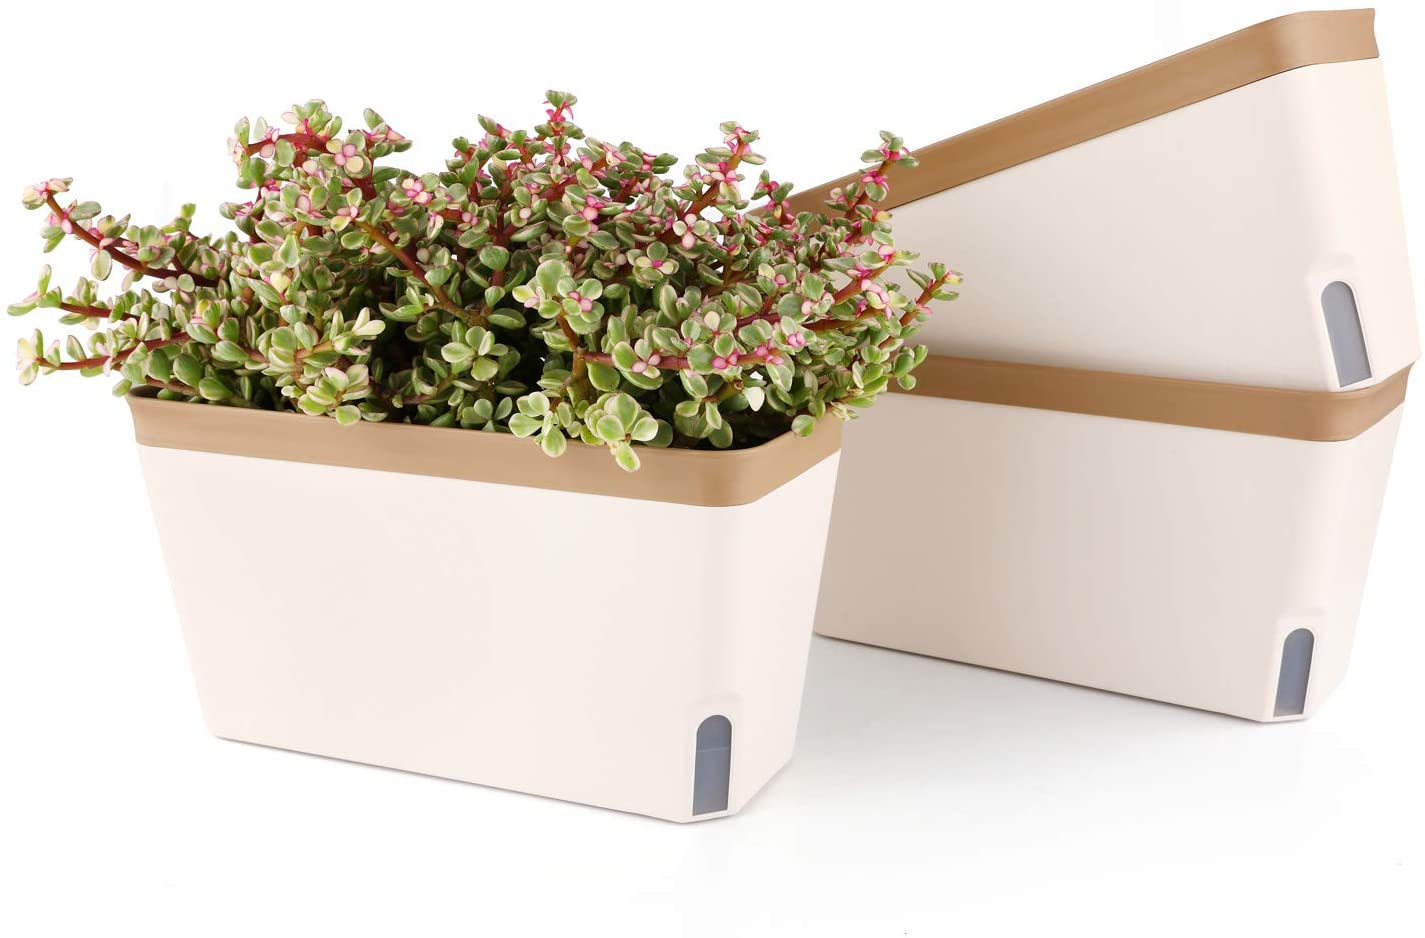 T4U Self Watering Planter Pot Rectangle 10.5 Inch Set of 3, Plastic Plant Pot with Visual Water Level Window Indoor Decorative Garden Flower Pot for Aloe Herb Orchid and Succulent Plants Brown